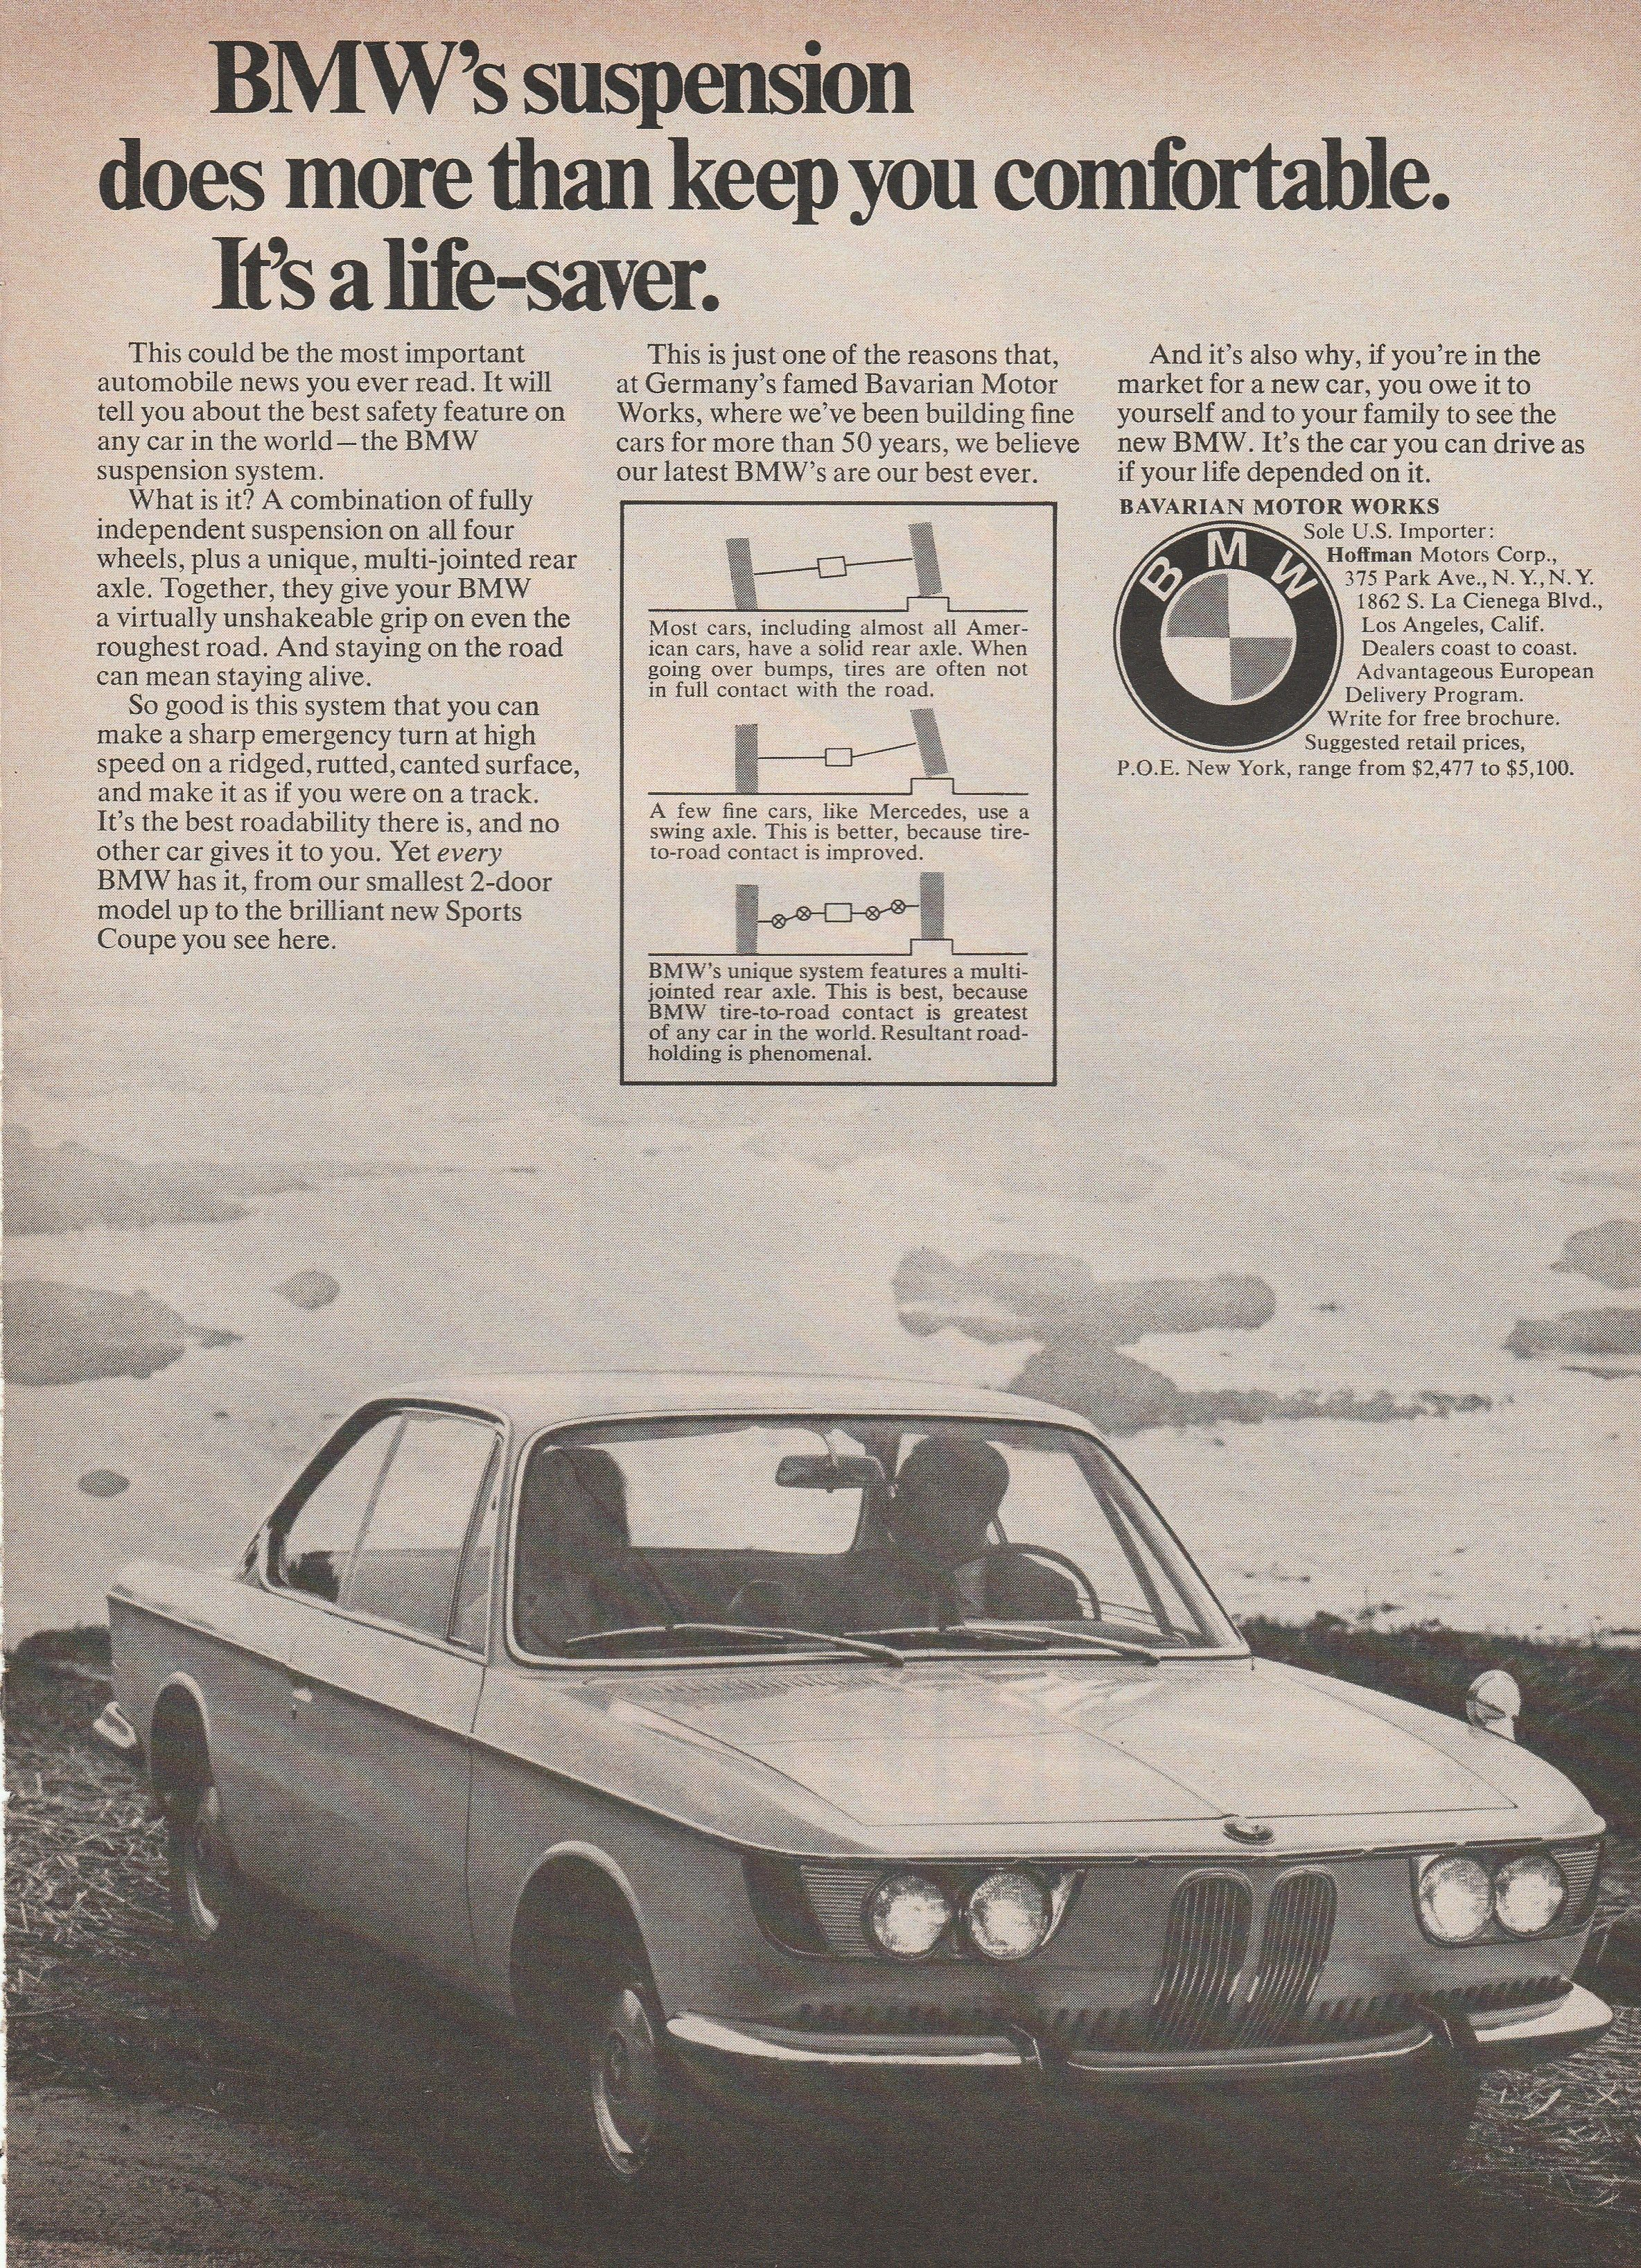 1965 1965 BMW 2000 suspension vintage ad BMW